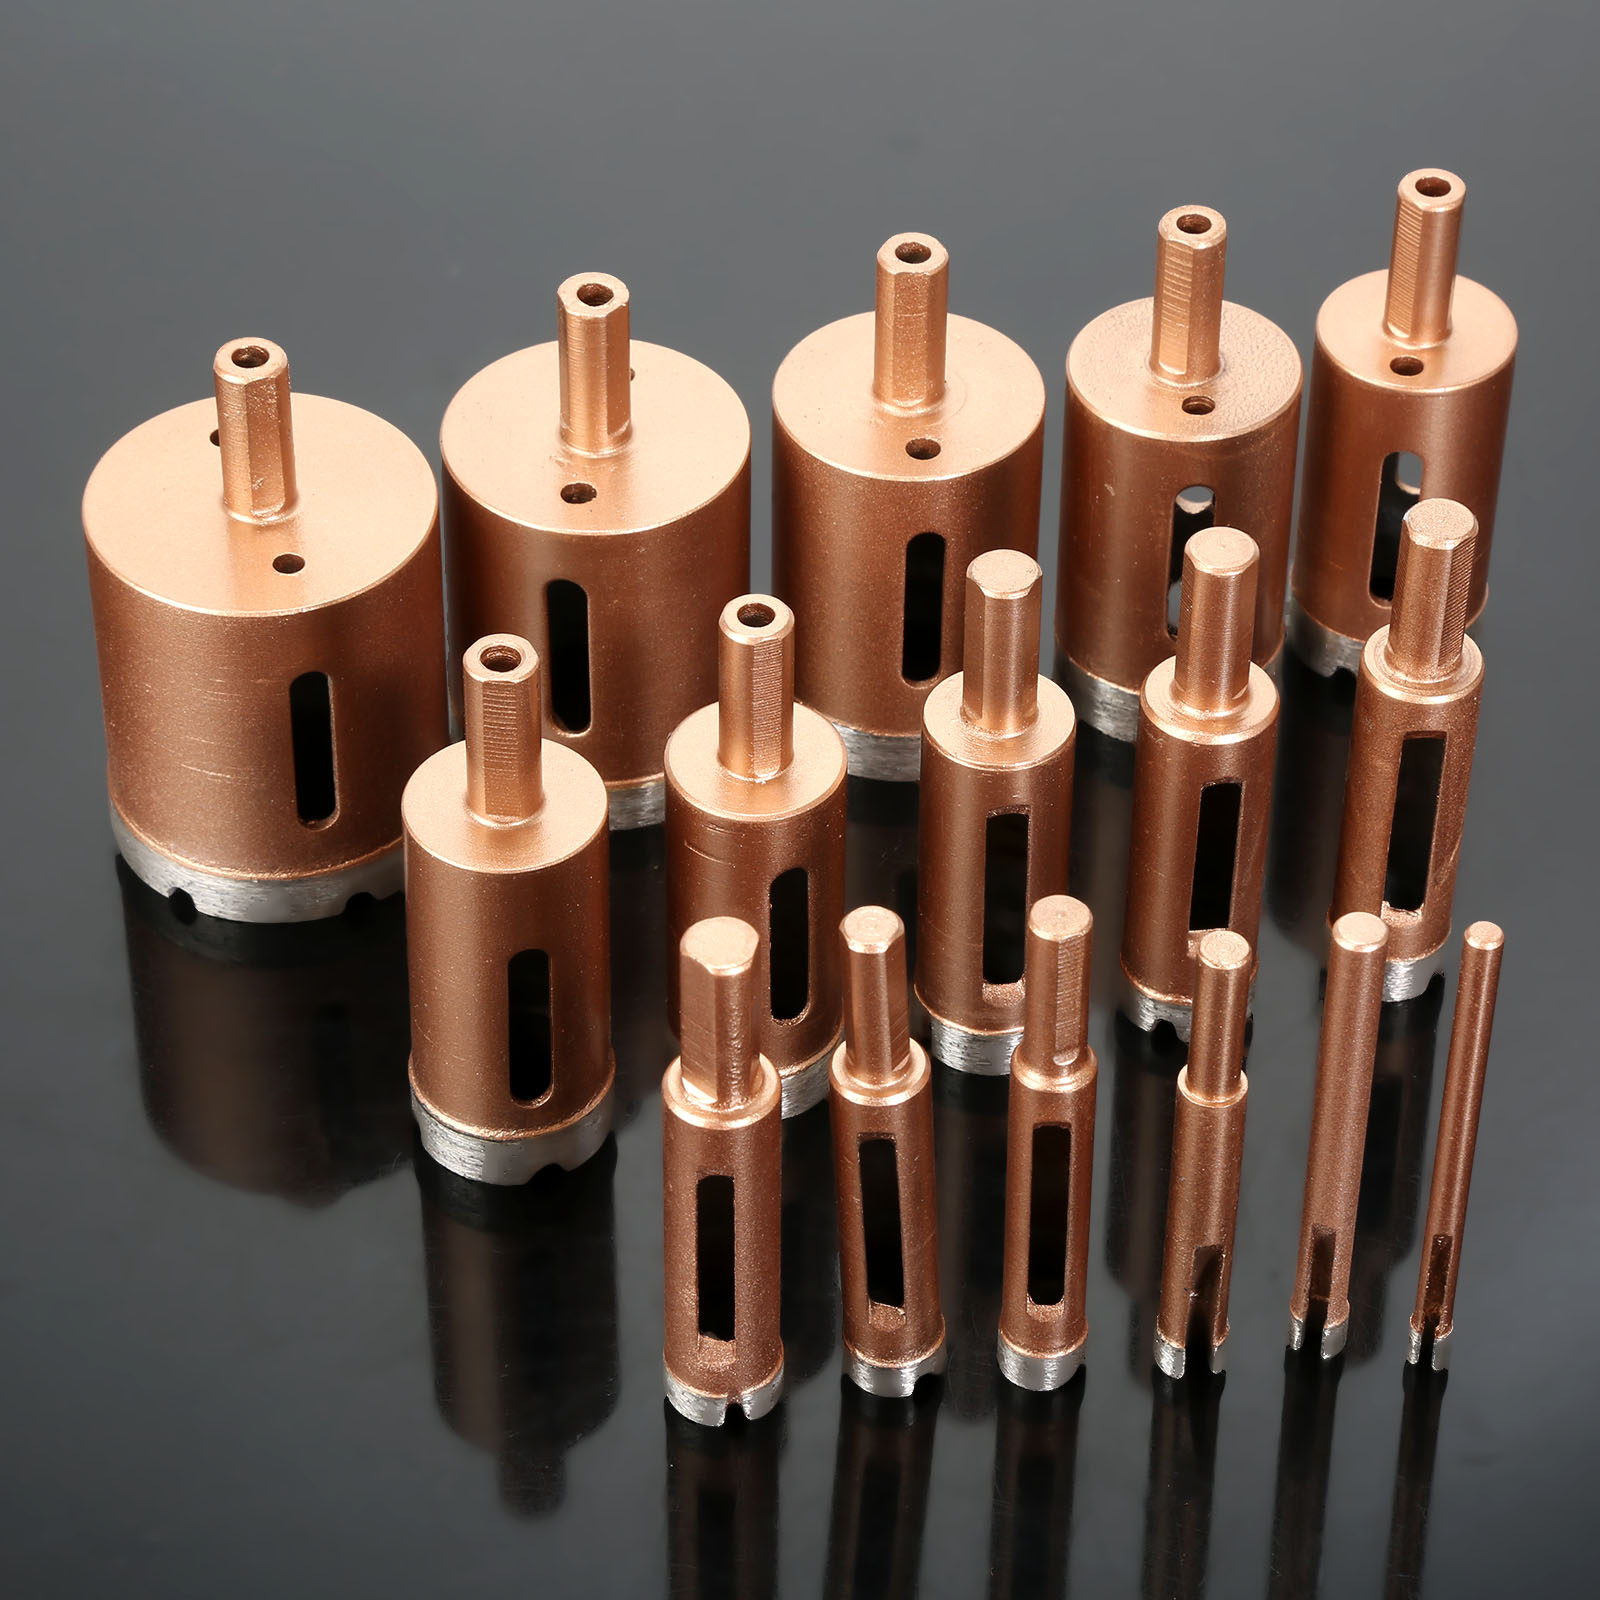 DRELD 1Pc 6-22mm Diamond Core Drill Bit Metal Hole Saw Holes Drilling Carpentry Cutter Tools For Tiles Marble Glass Granite